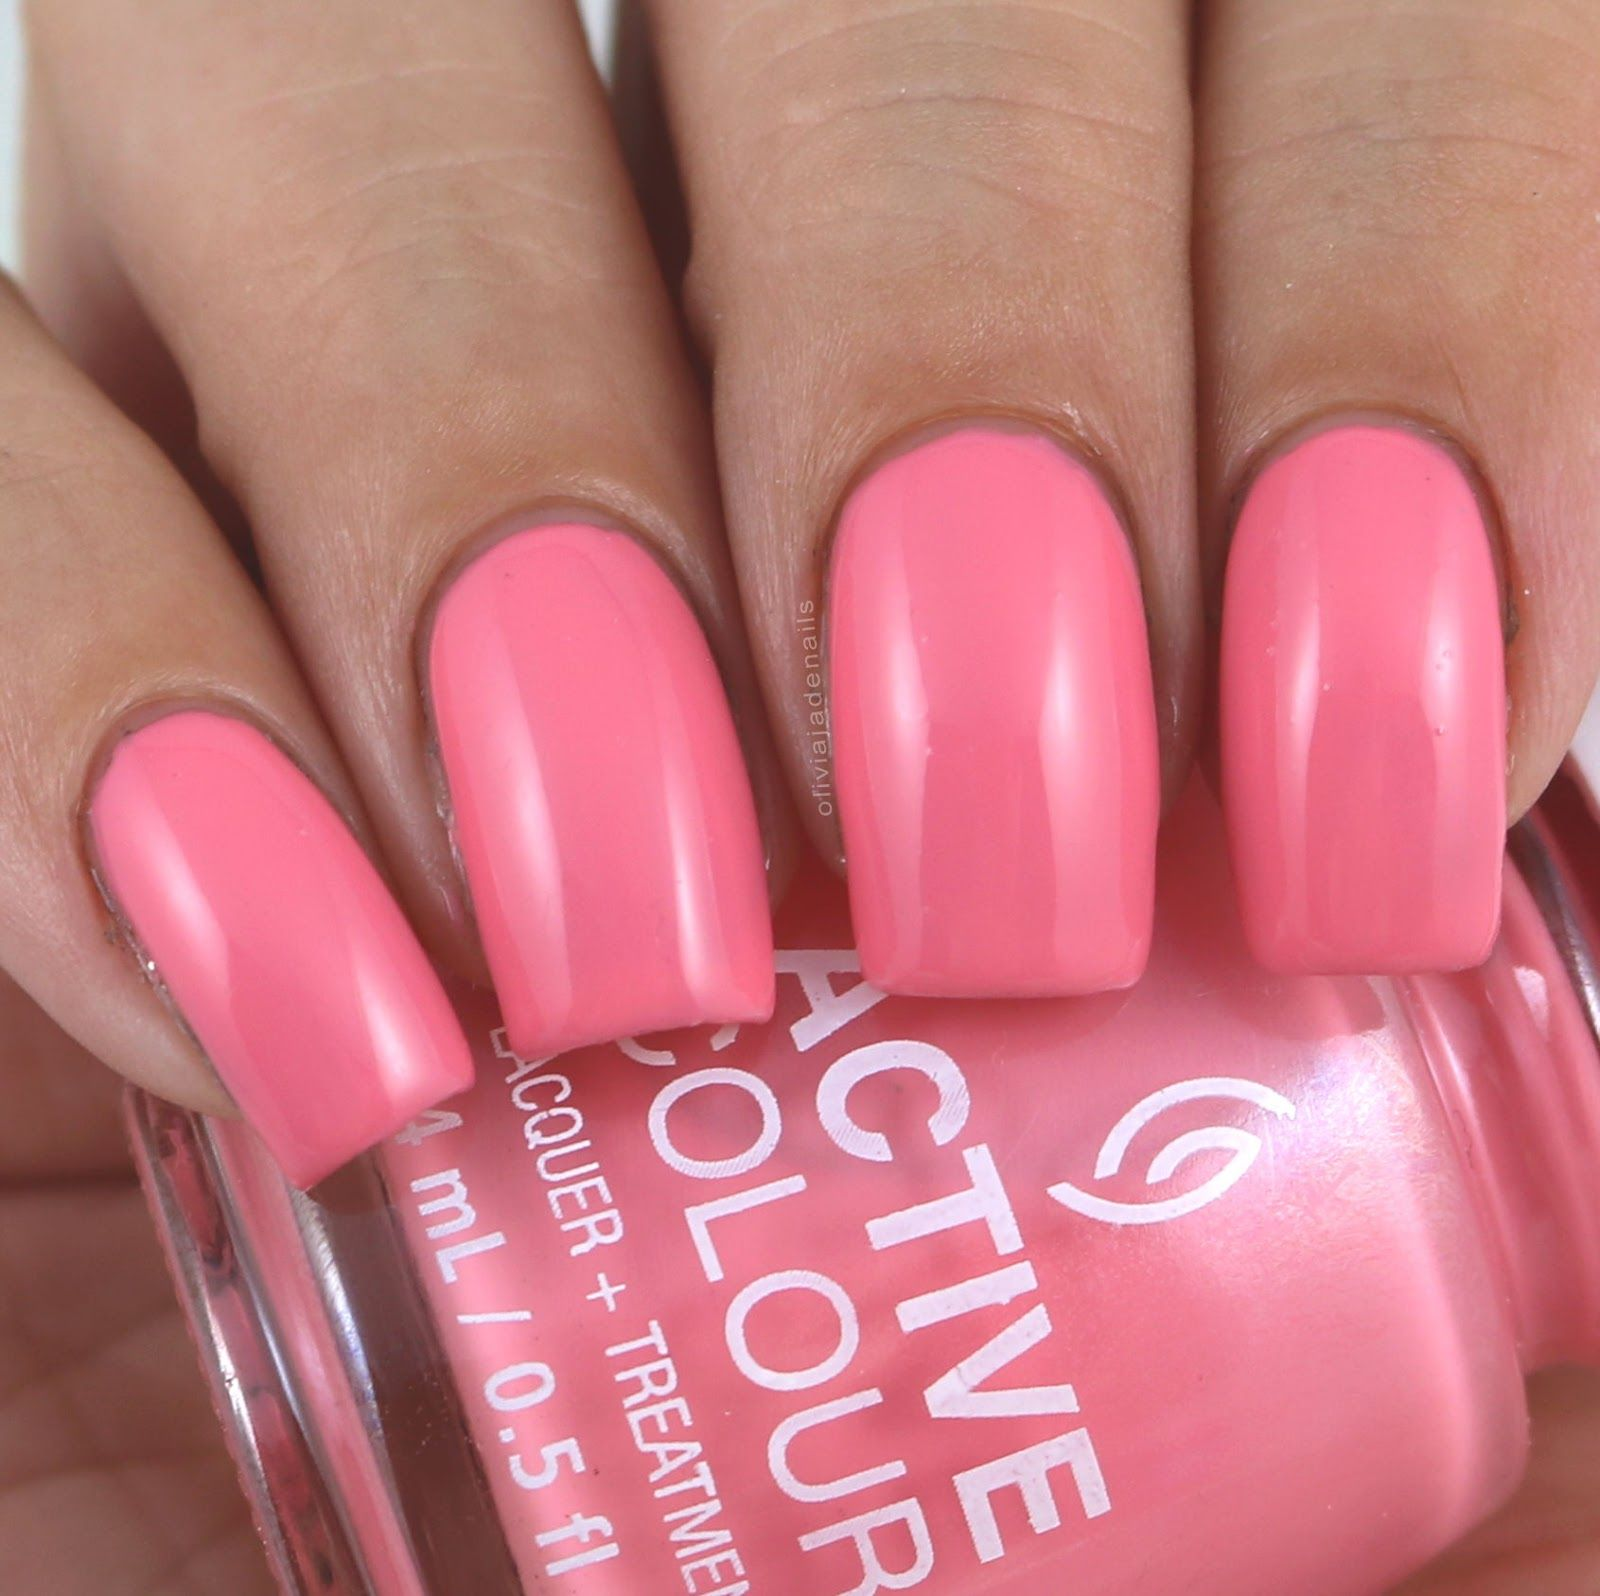 China Glaze For Coral Support swatched by Olivia Jade Nails | Gel ...